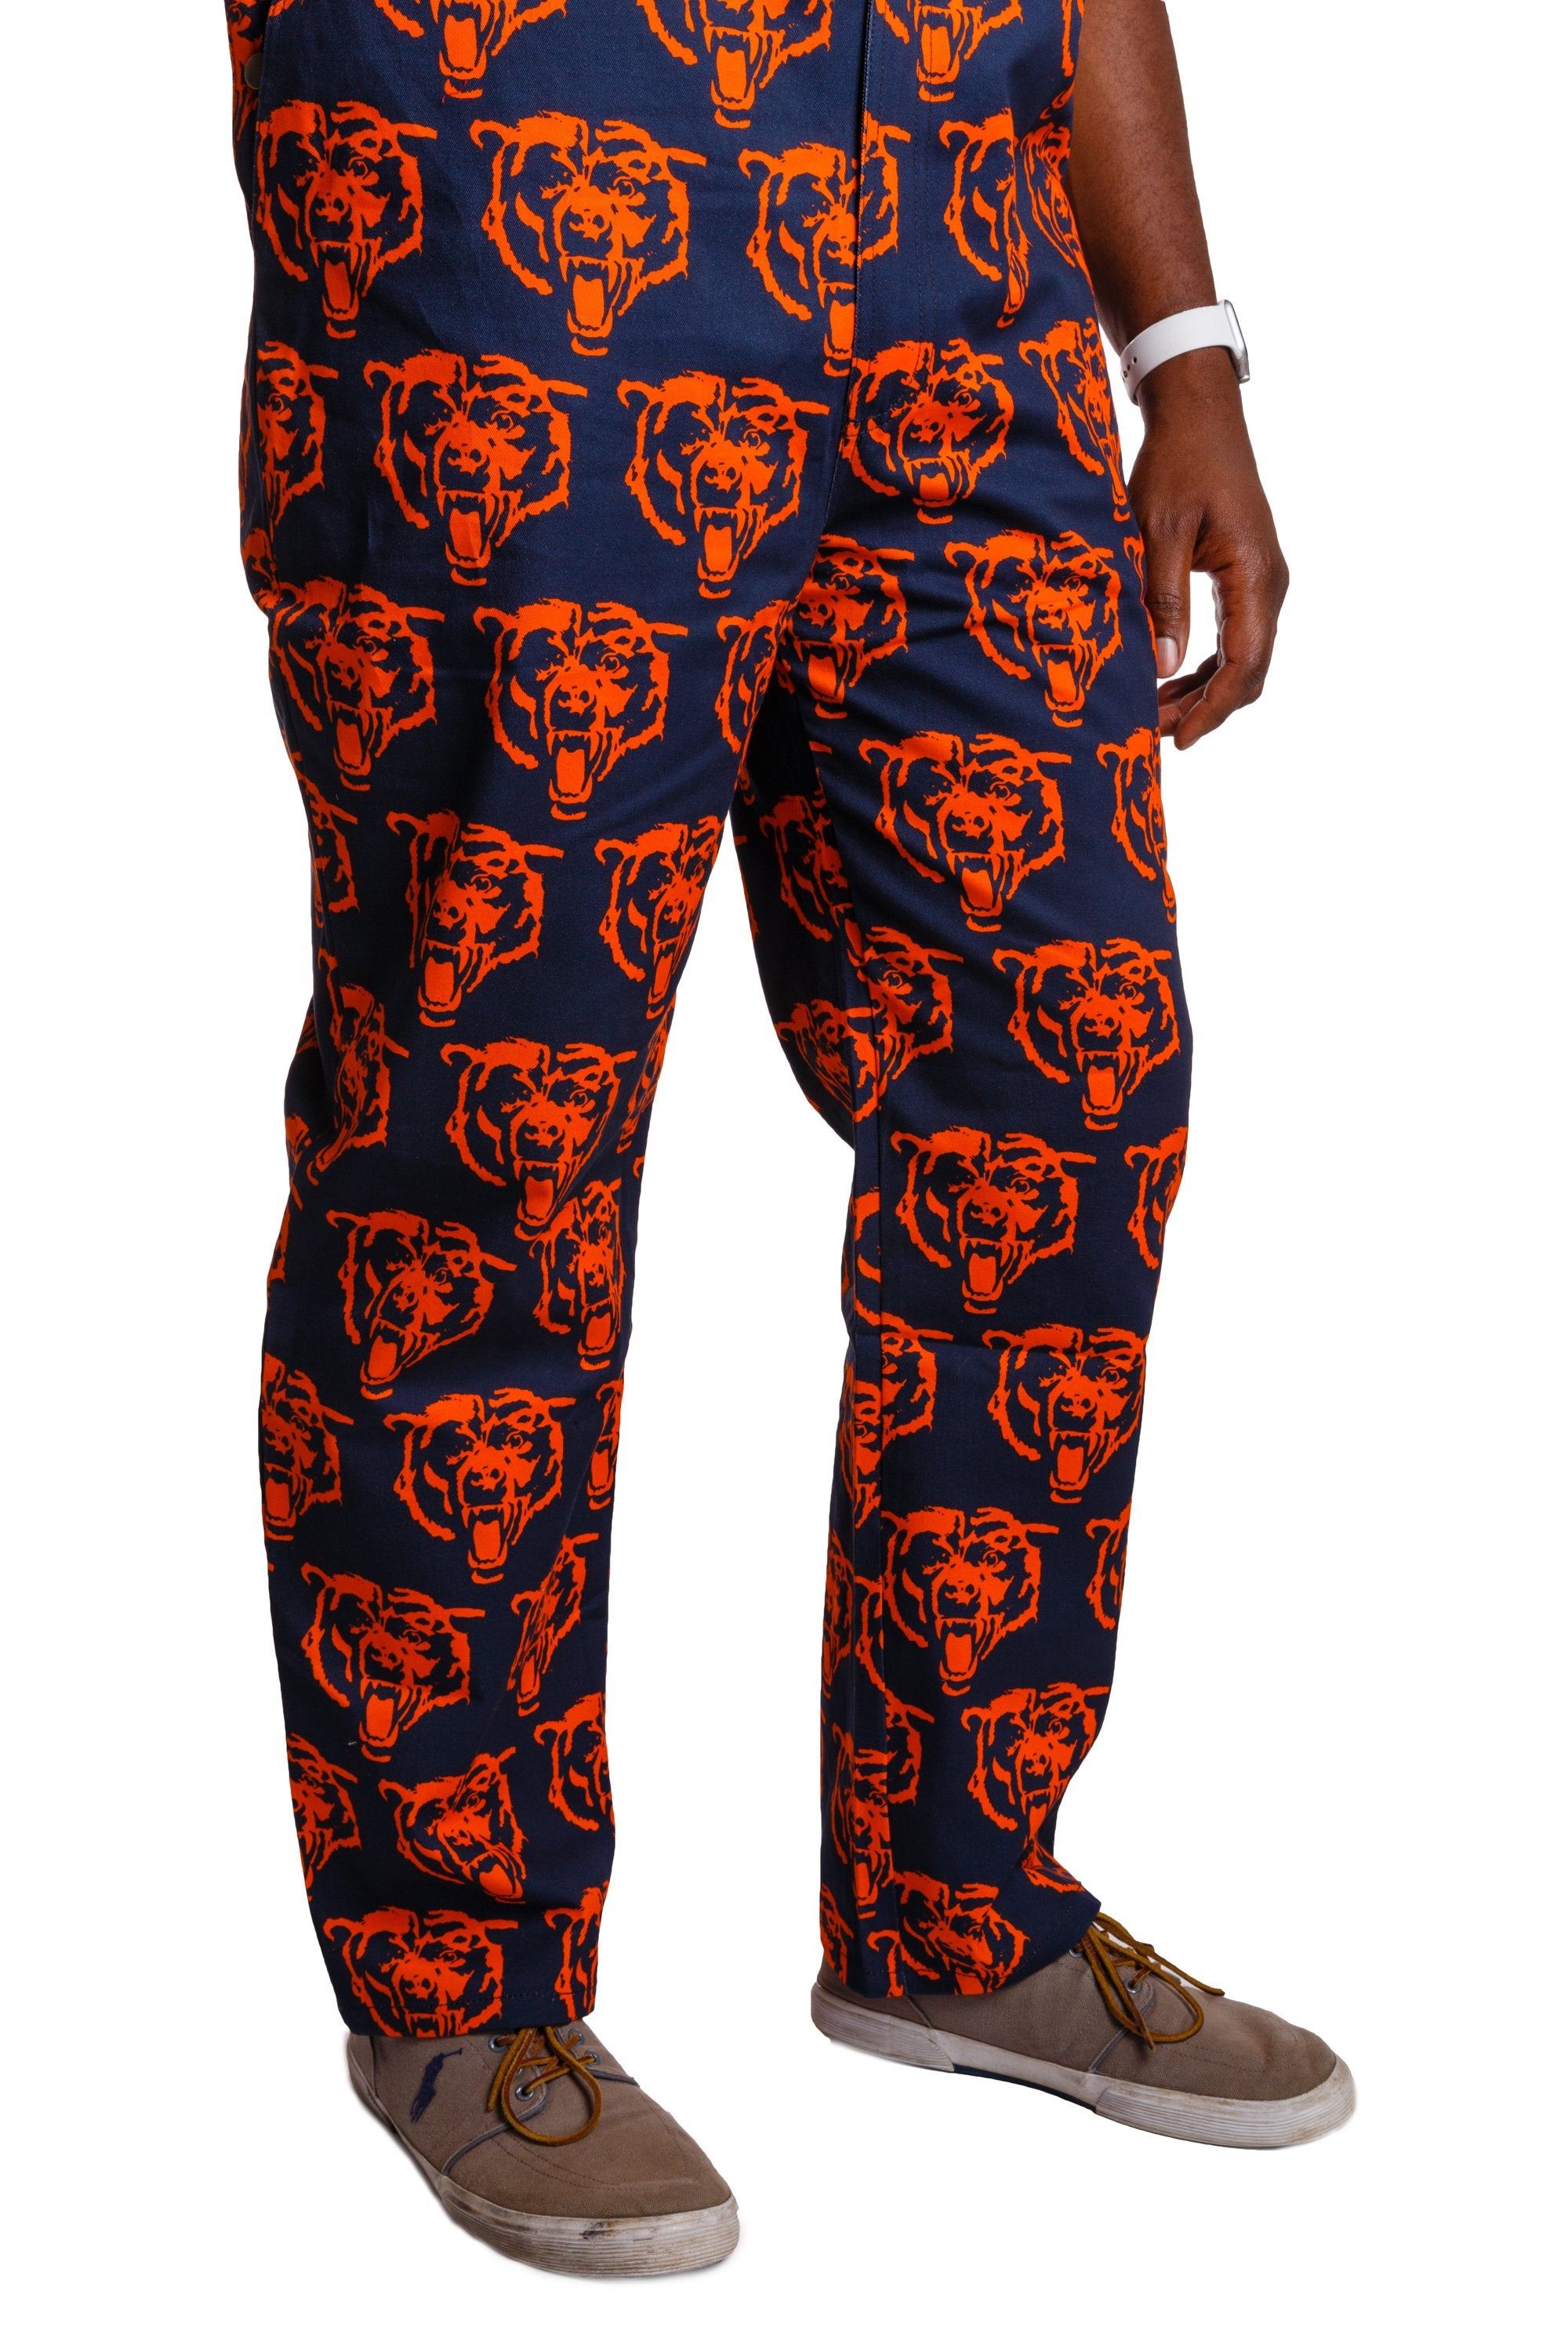 Da Bears men's football overalls